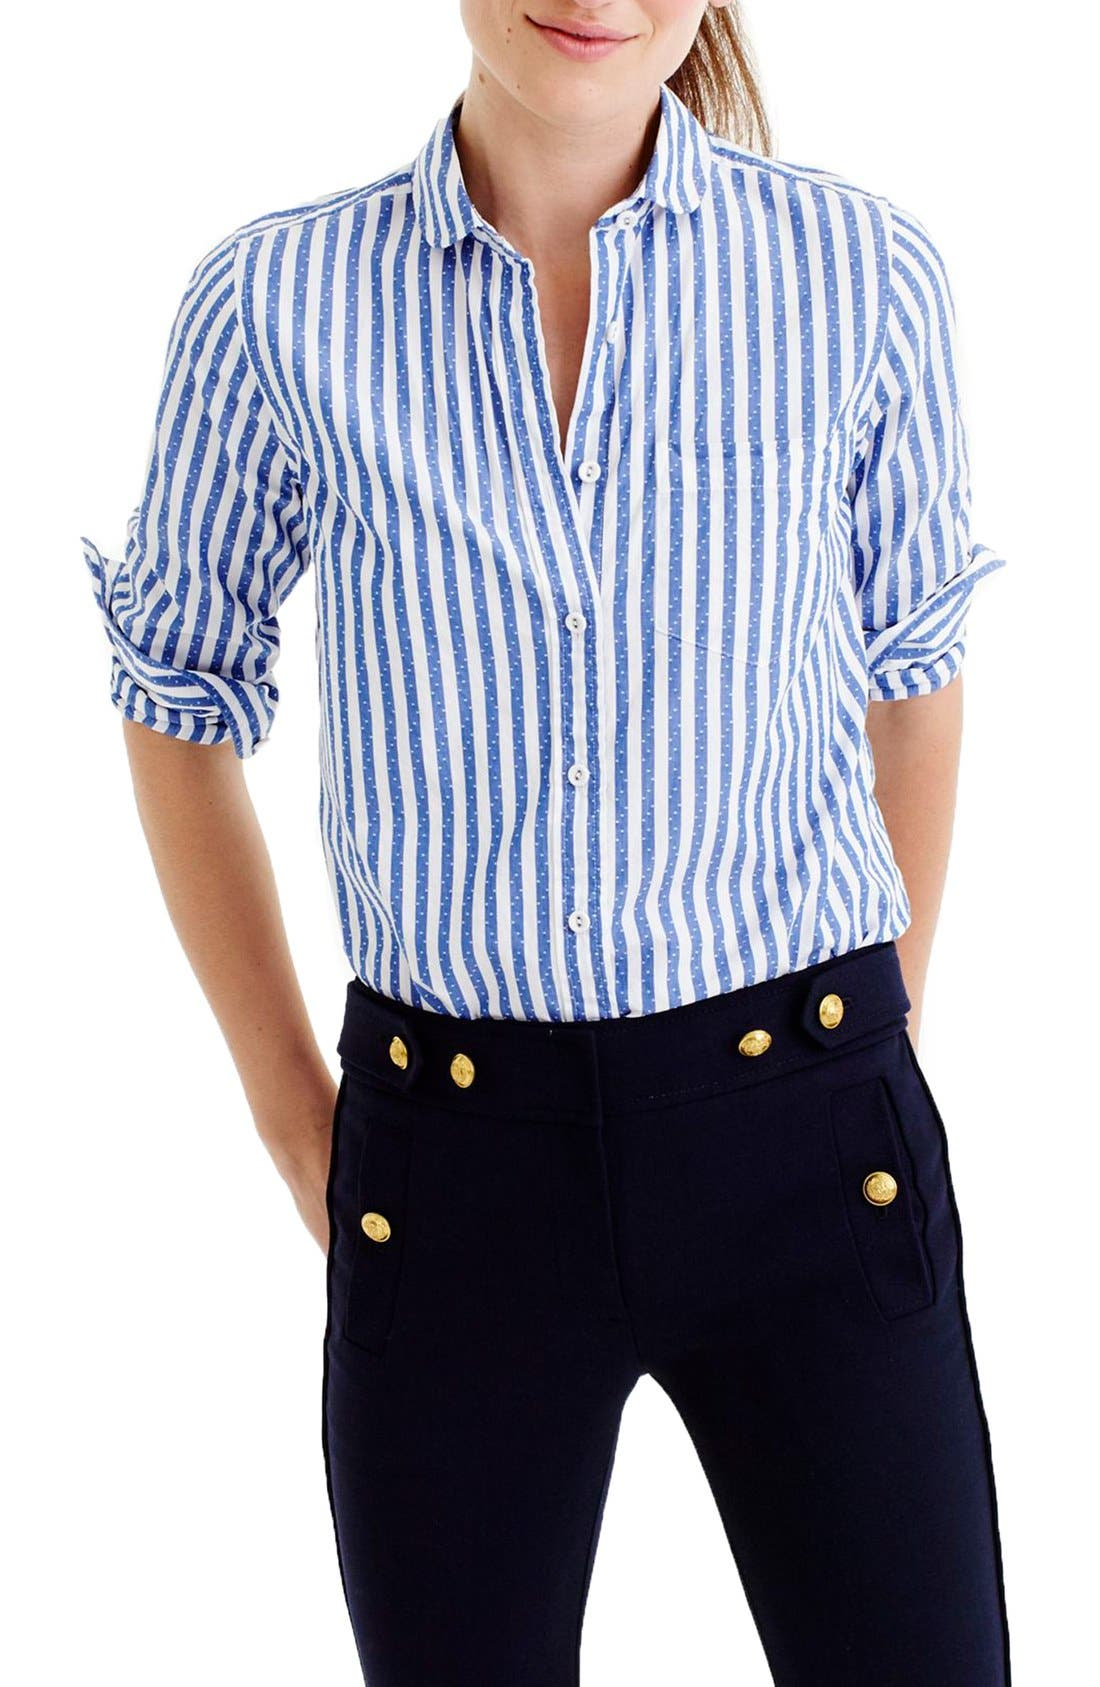 Alternate Image 1 Selected - J.Crew Club Collar Jacquard Stripe Boy Shirt (Regular & Petite)